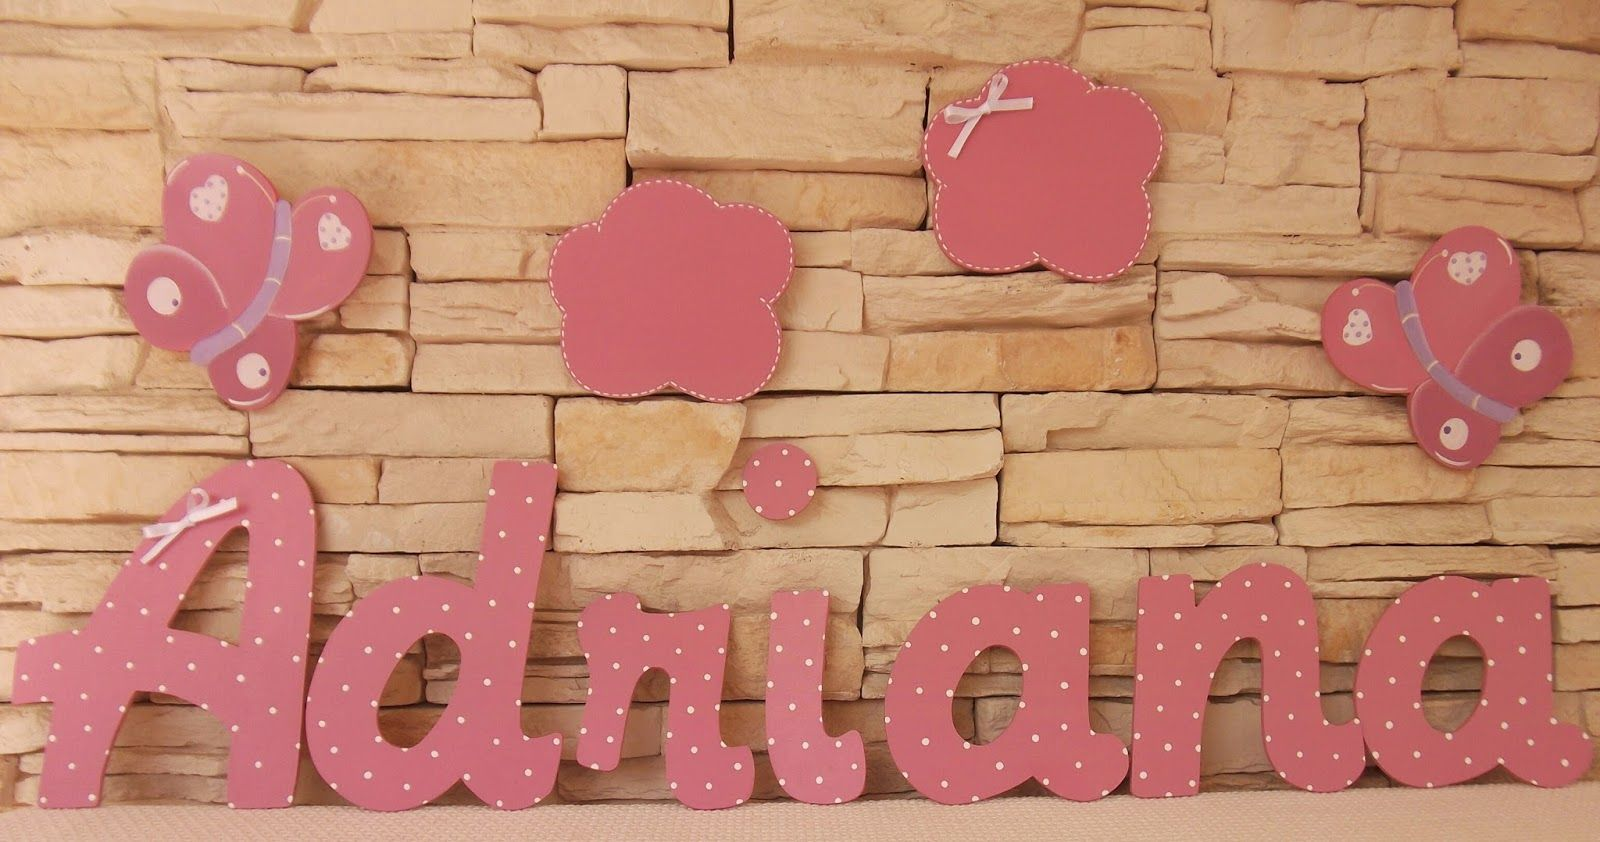 Ideas Para Decorar Letras De Madera Decoración Infantil Pekerines: Letras De Madera Decoradas